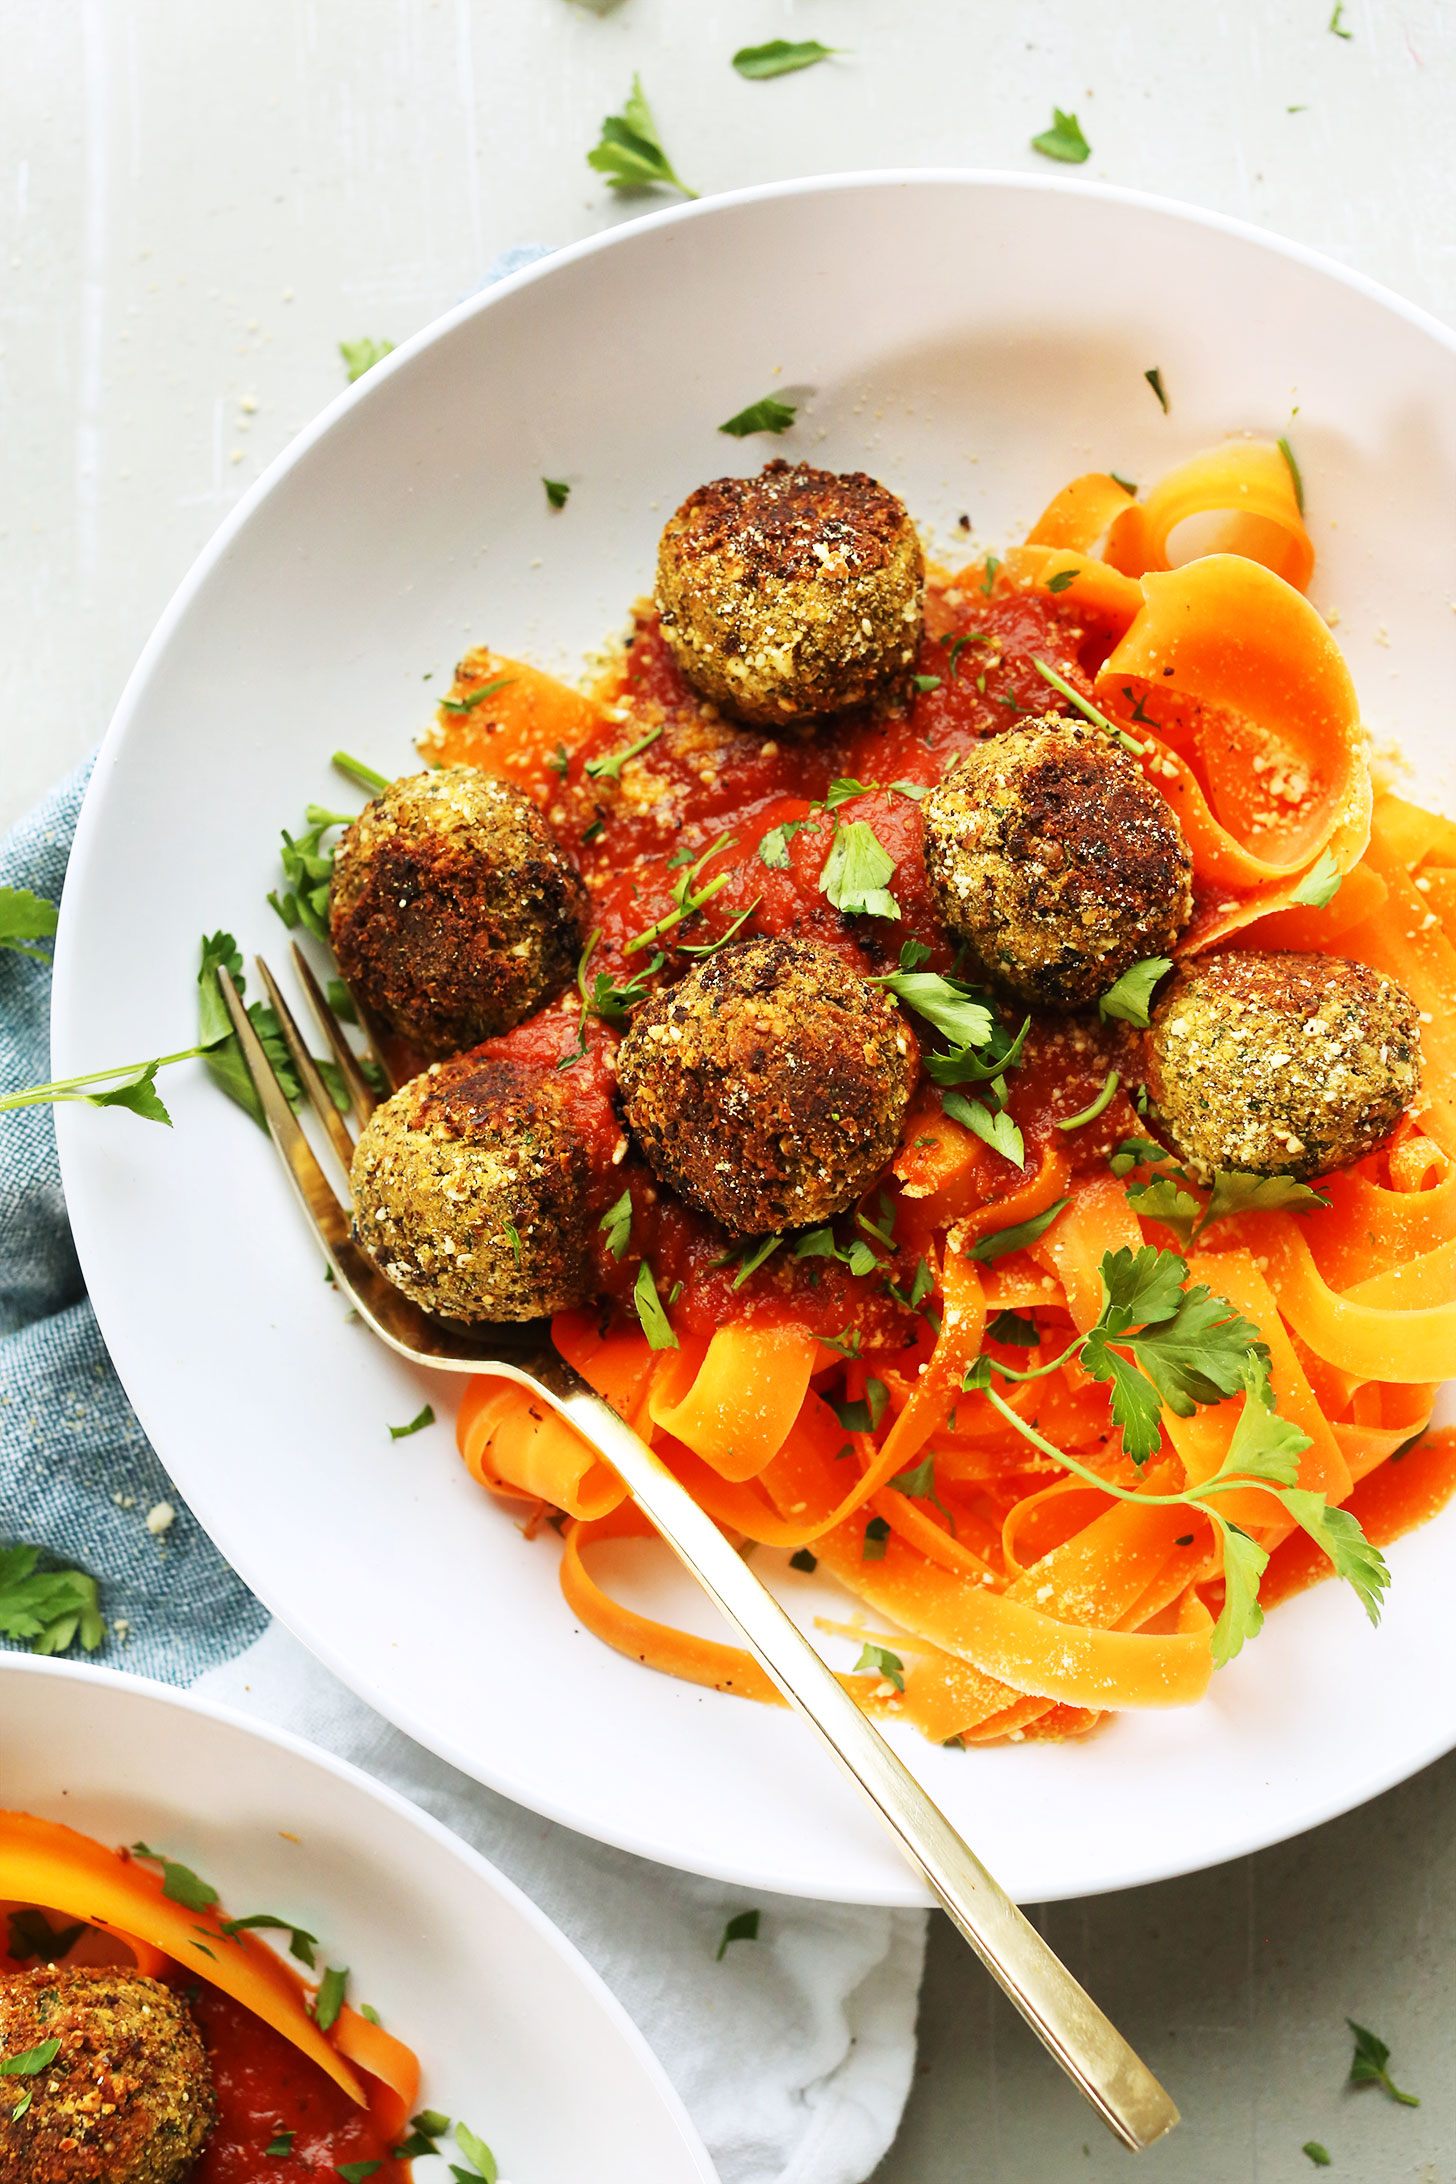 Bowl of carrot ribbons topped with our easy vegan lentil meatballs recipe